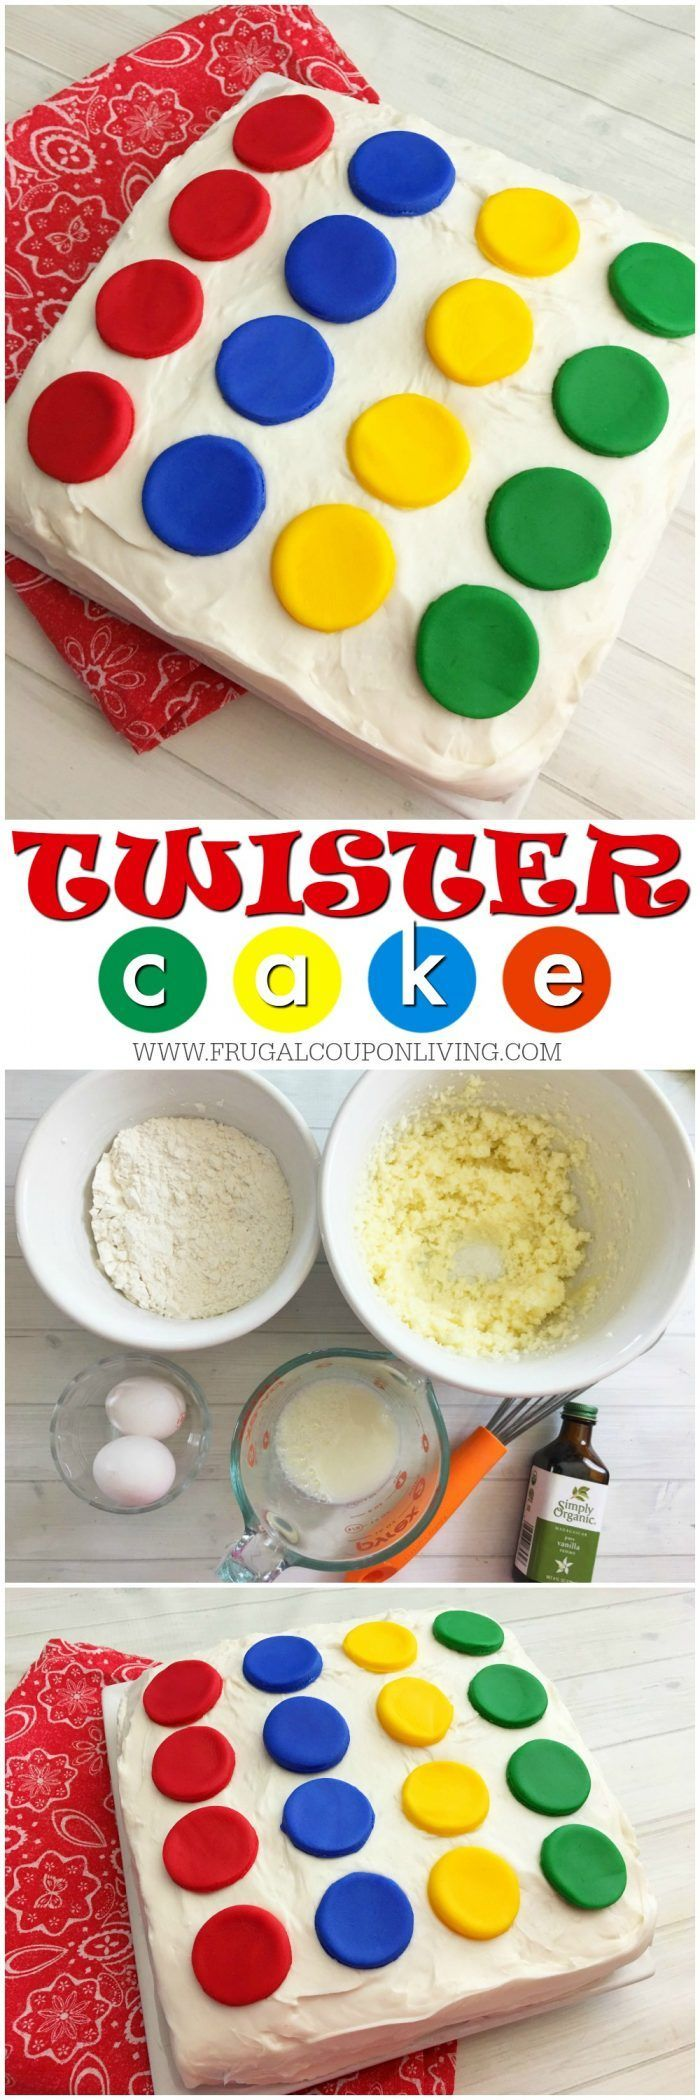 Right hand on red, left foot on yellow! Twister Cake Recipe and Tutorial on Frugal Coupon Living. Plus other Family Game Night Snacks, Ideas and Hacks.